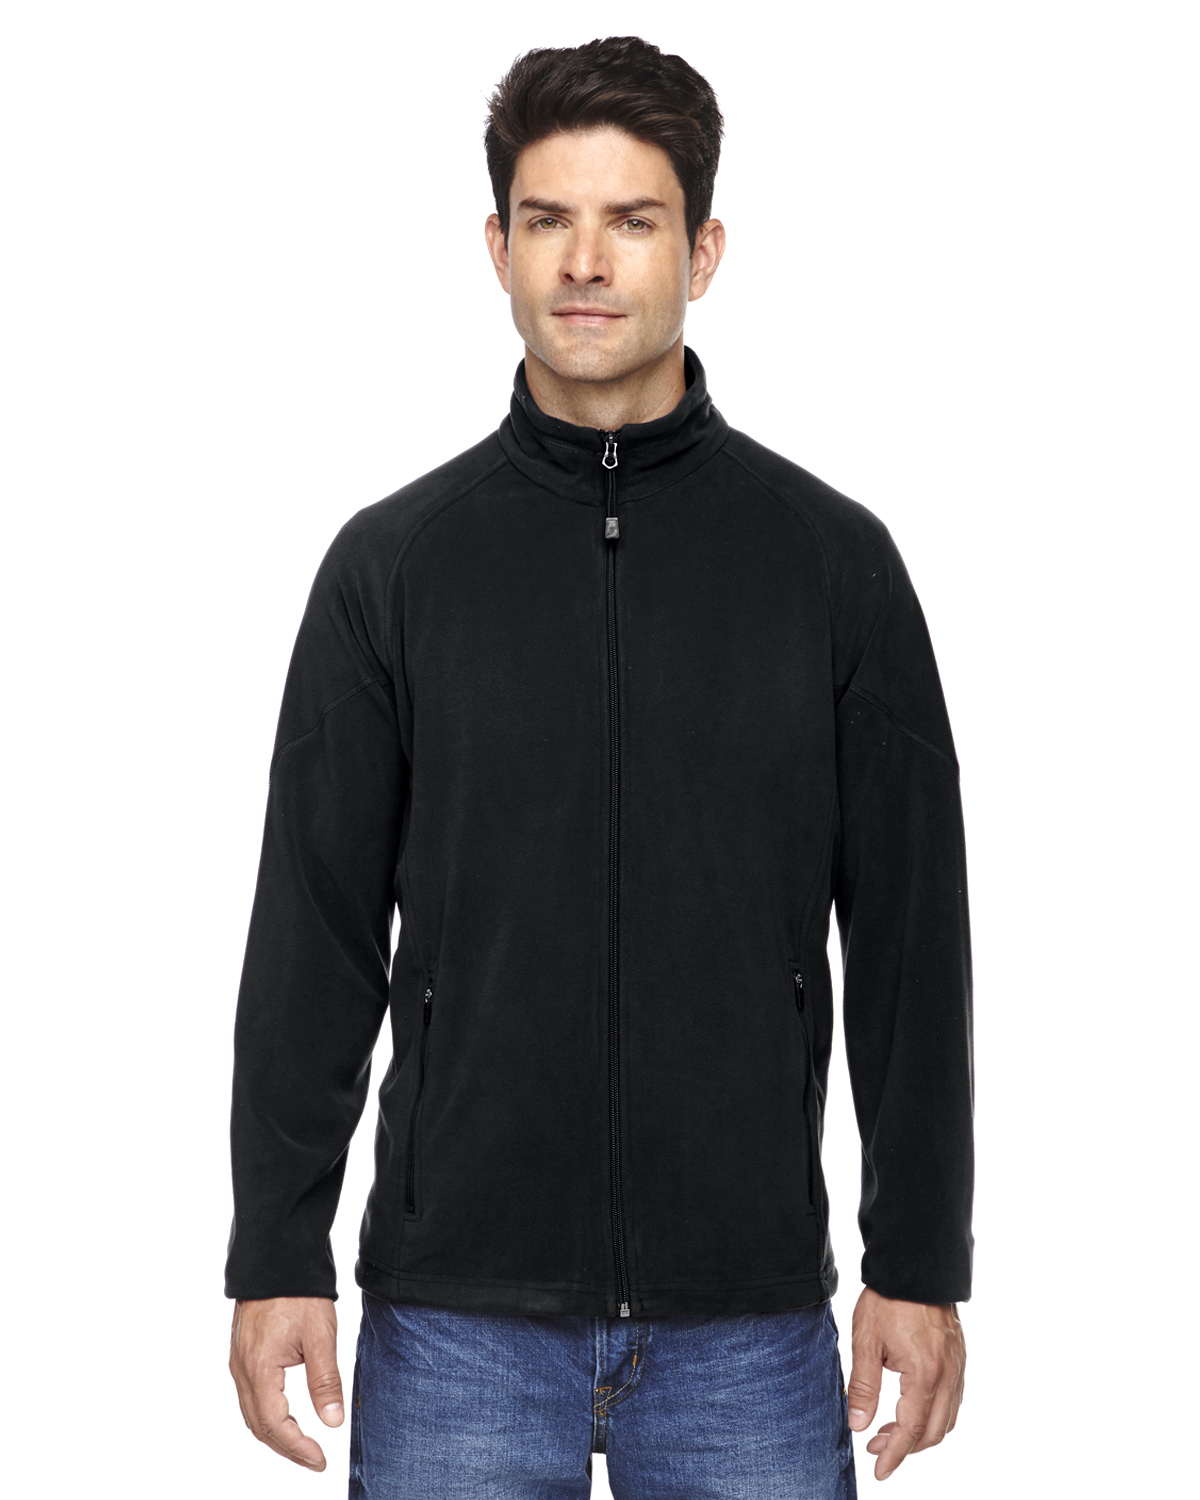 Hema Fleece North End 88095 Men's Microfleece Unlined Jacket - Shirtmax